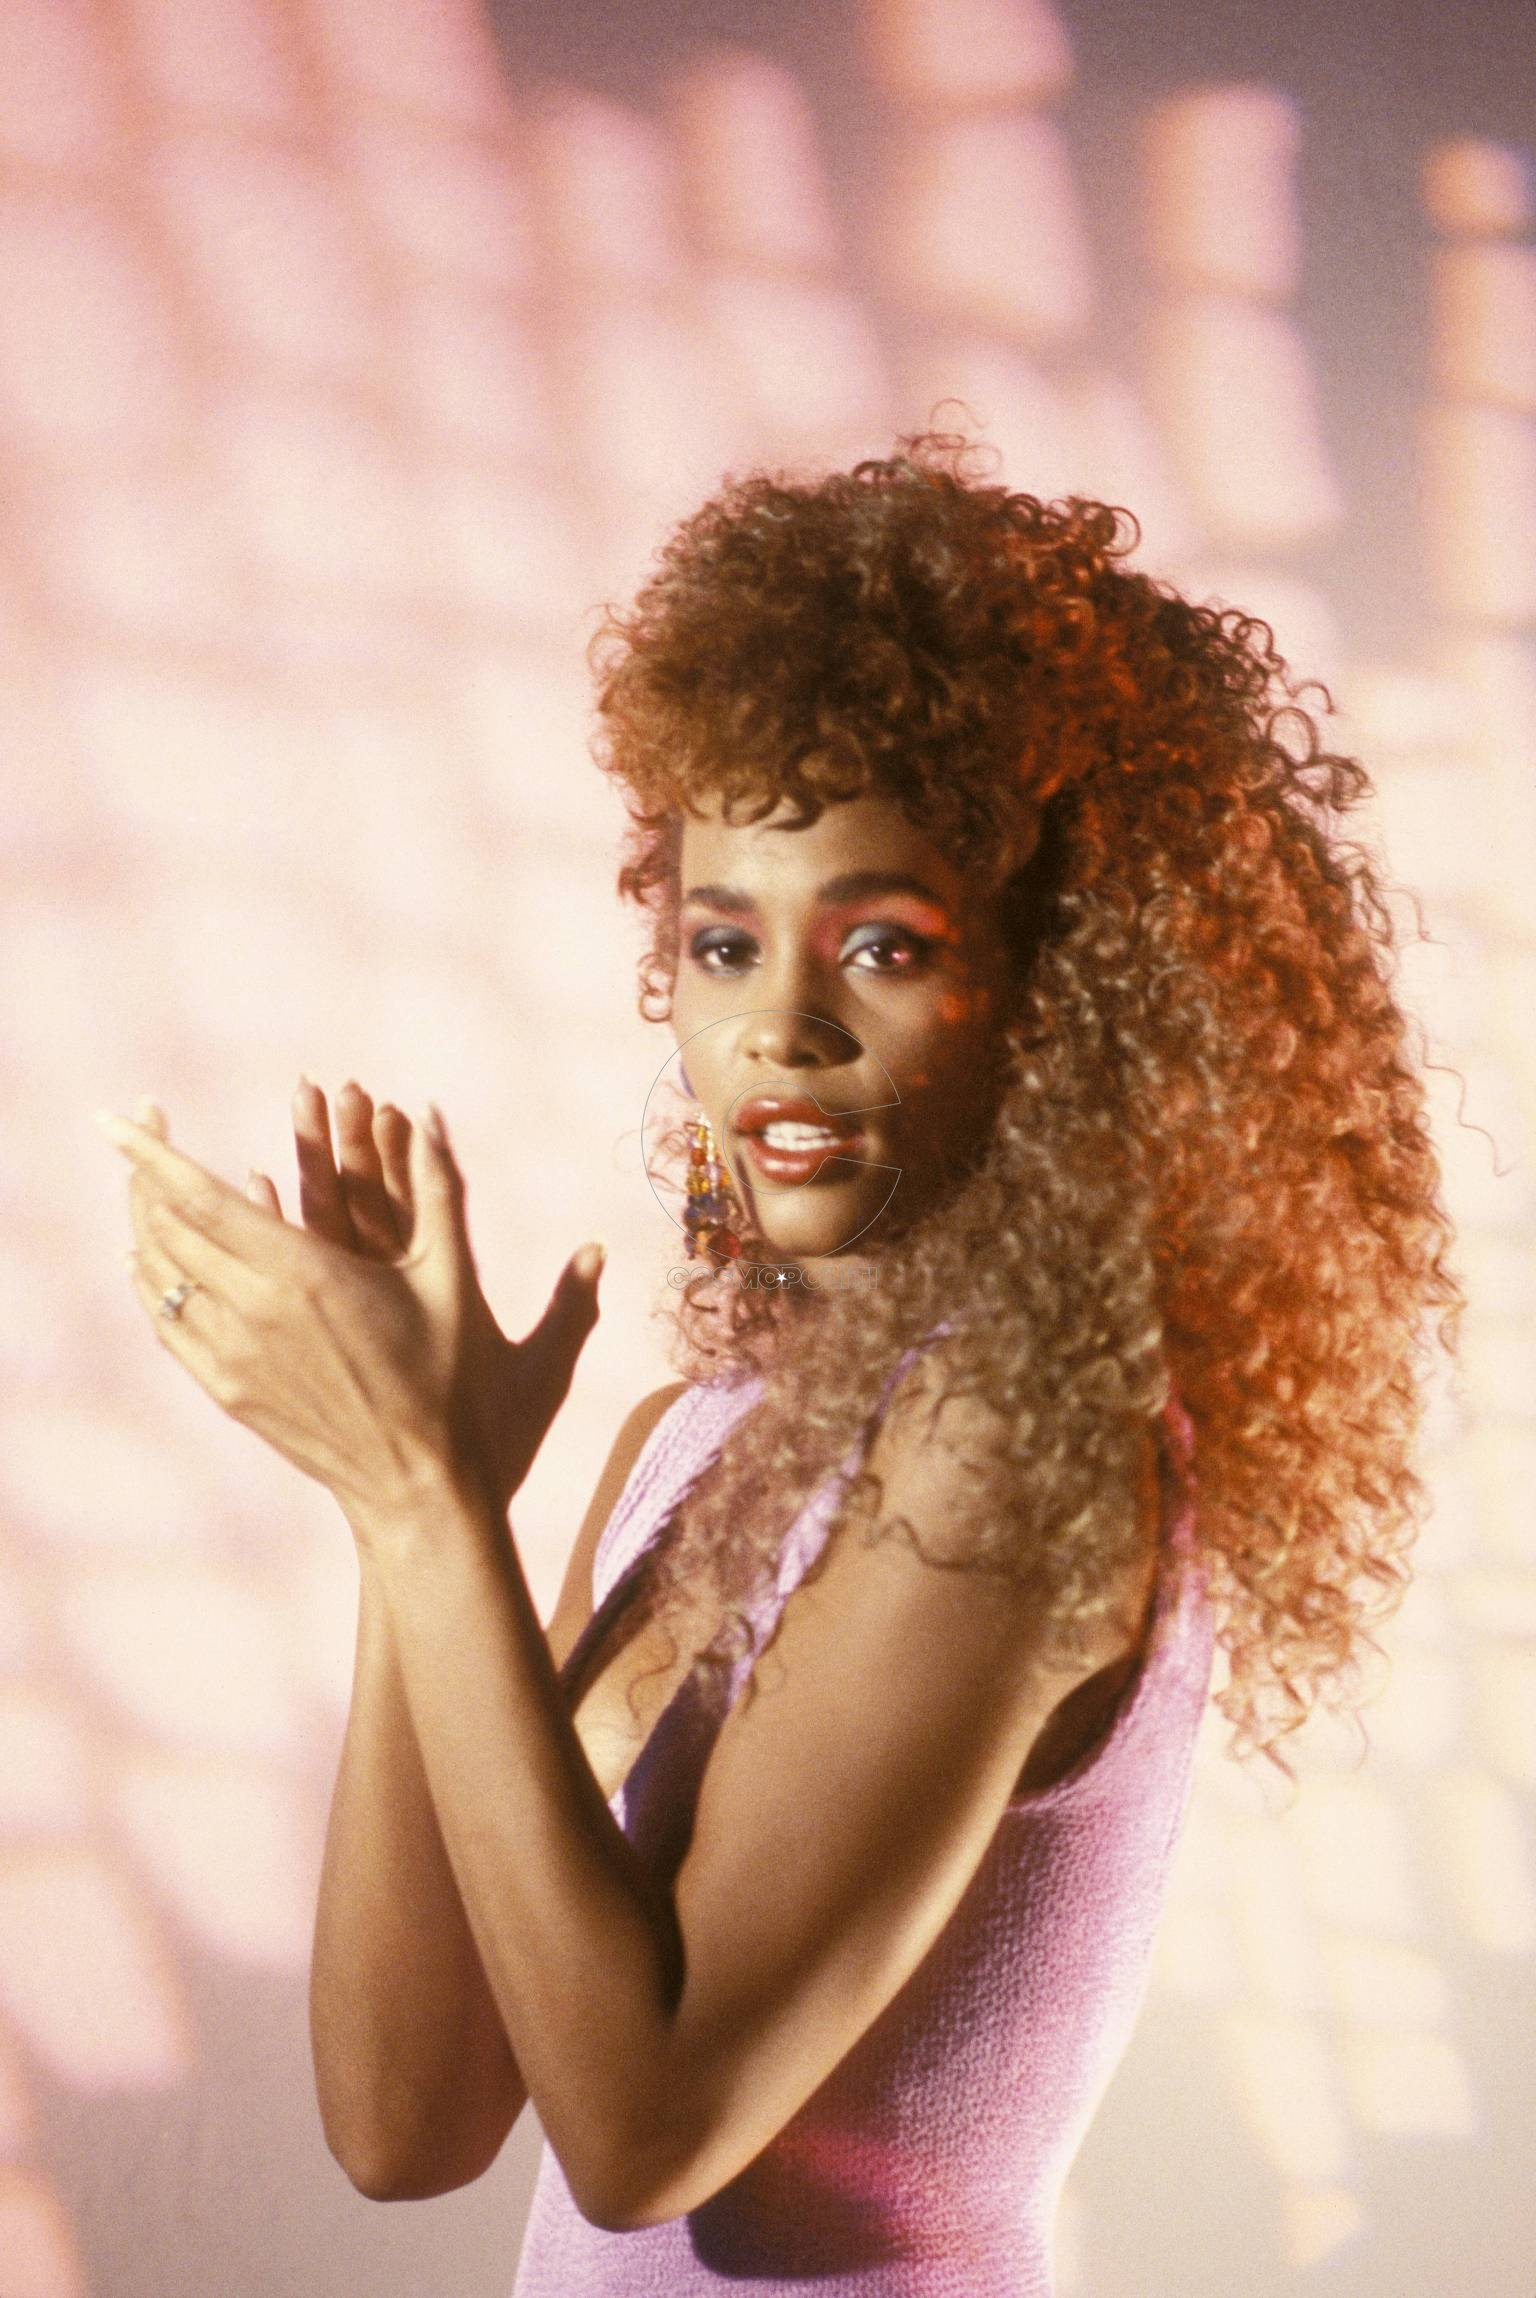 UNITED STATES - MARCH 01: Photo of Whitney HOUSTON (Photo by Ebet Roberts/Redferns)